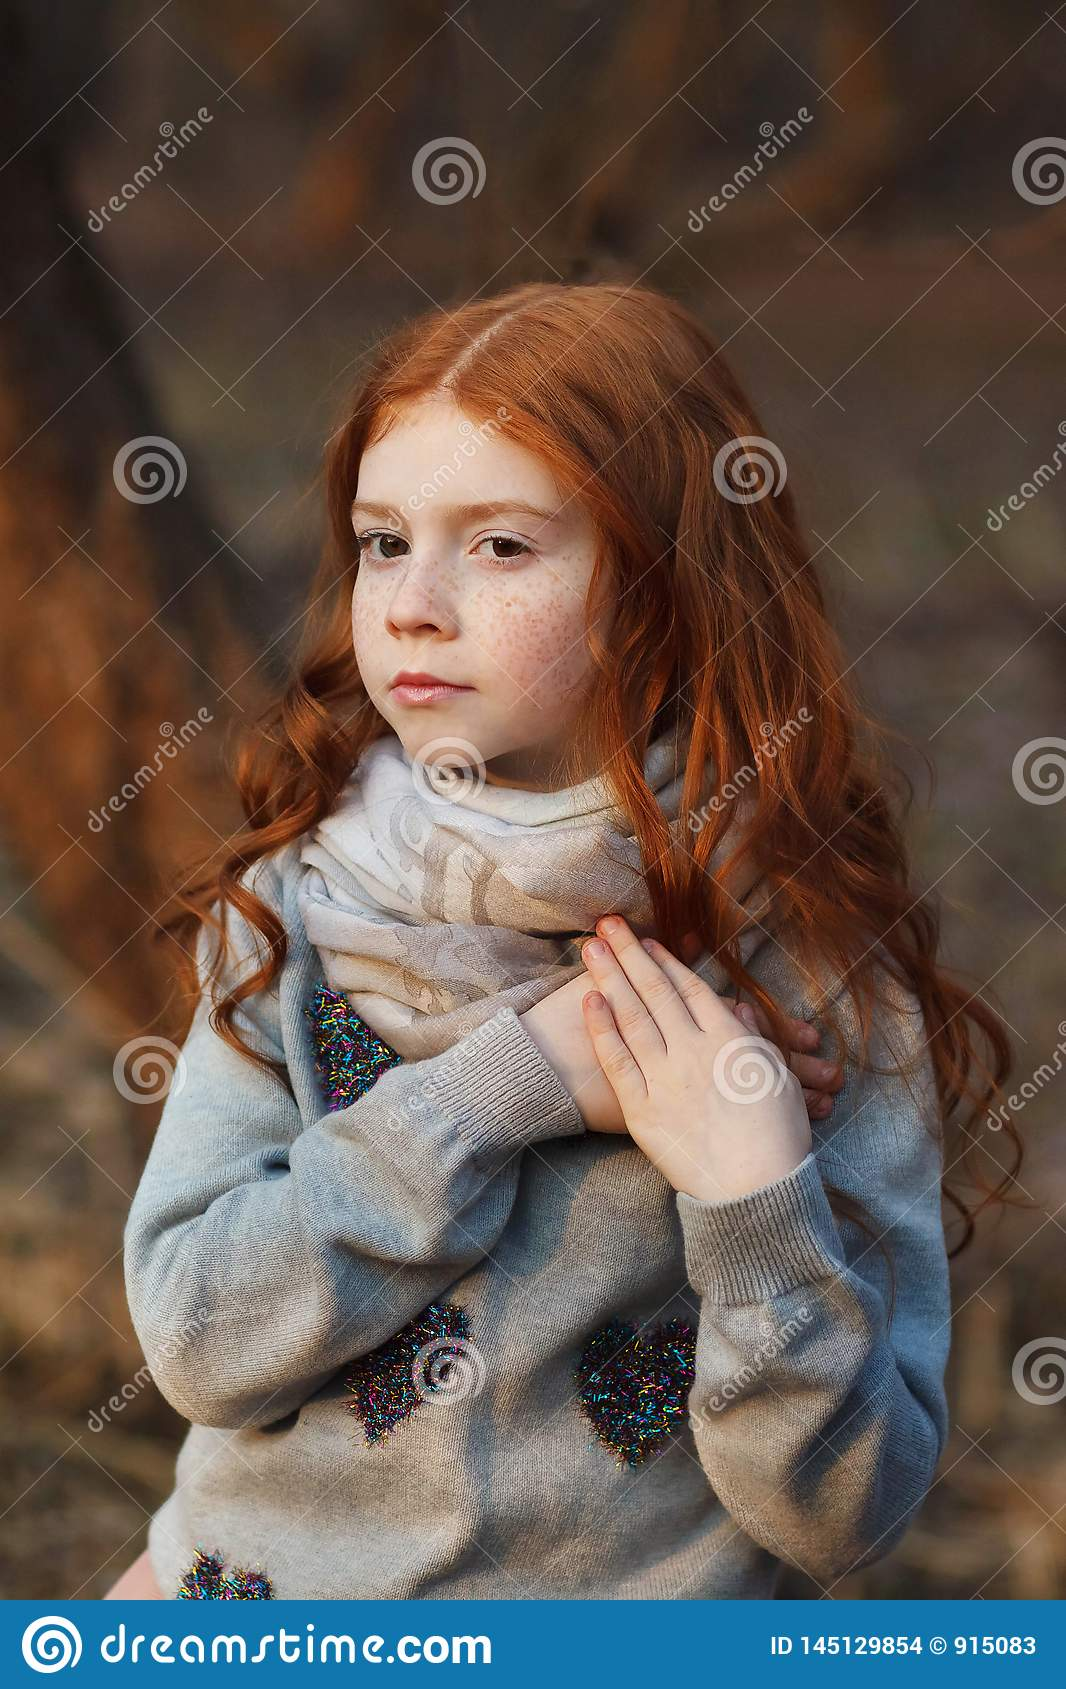 Portrait of a beautiful pensive girl with red hair and freckles